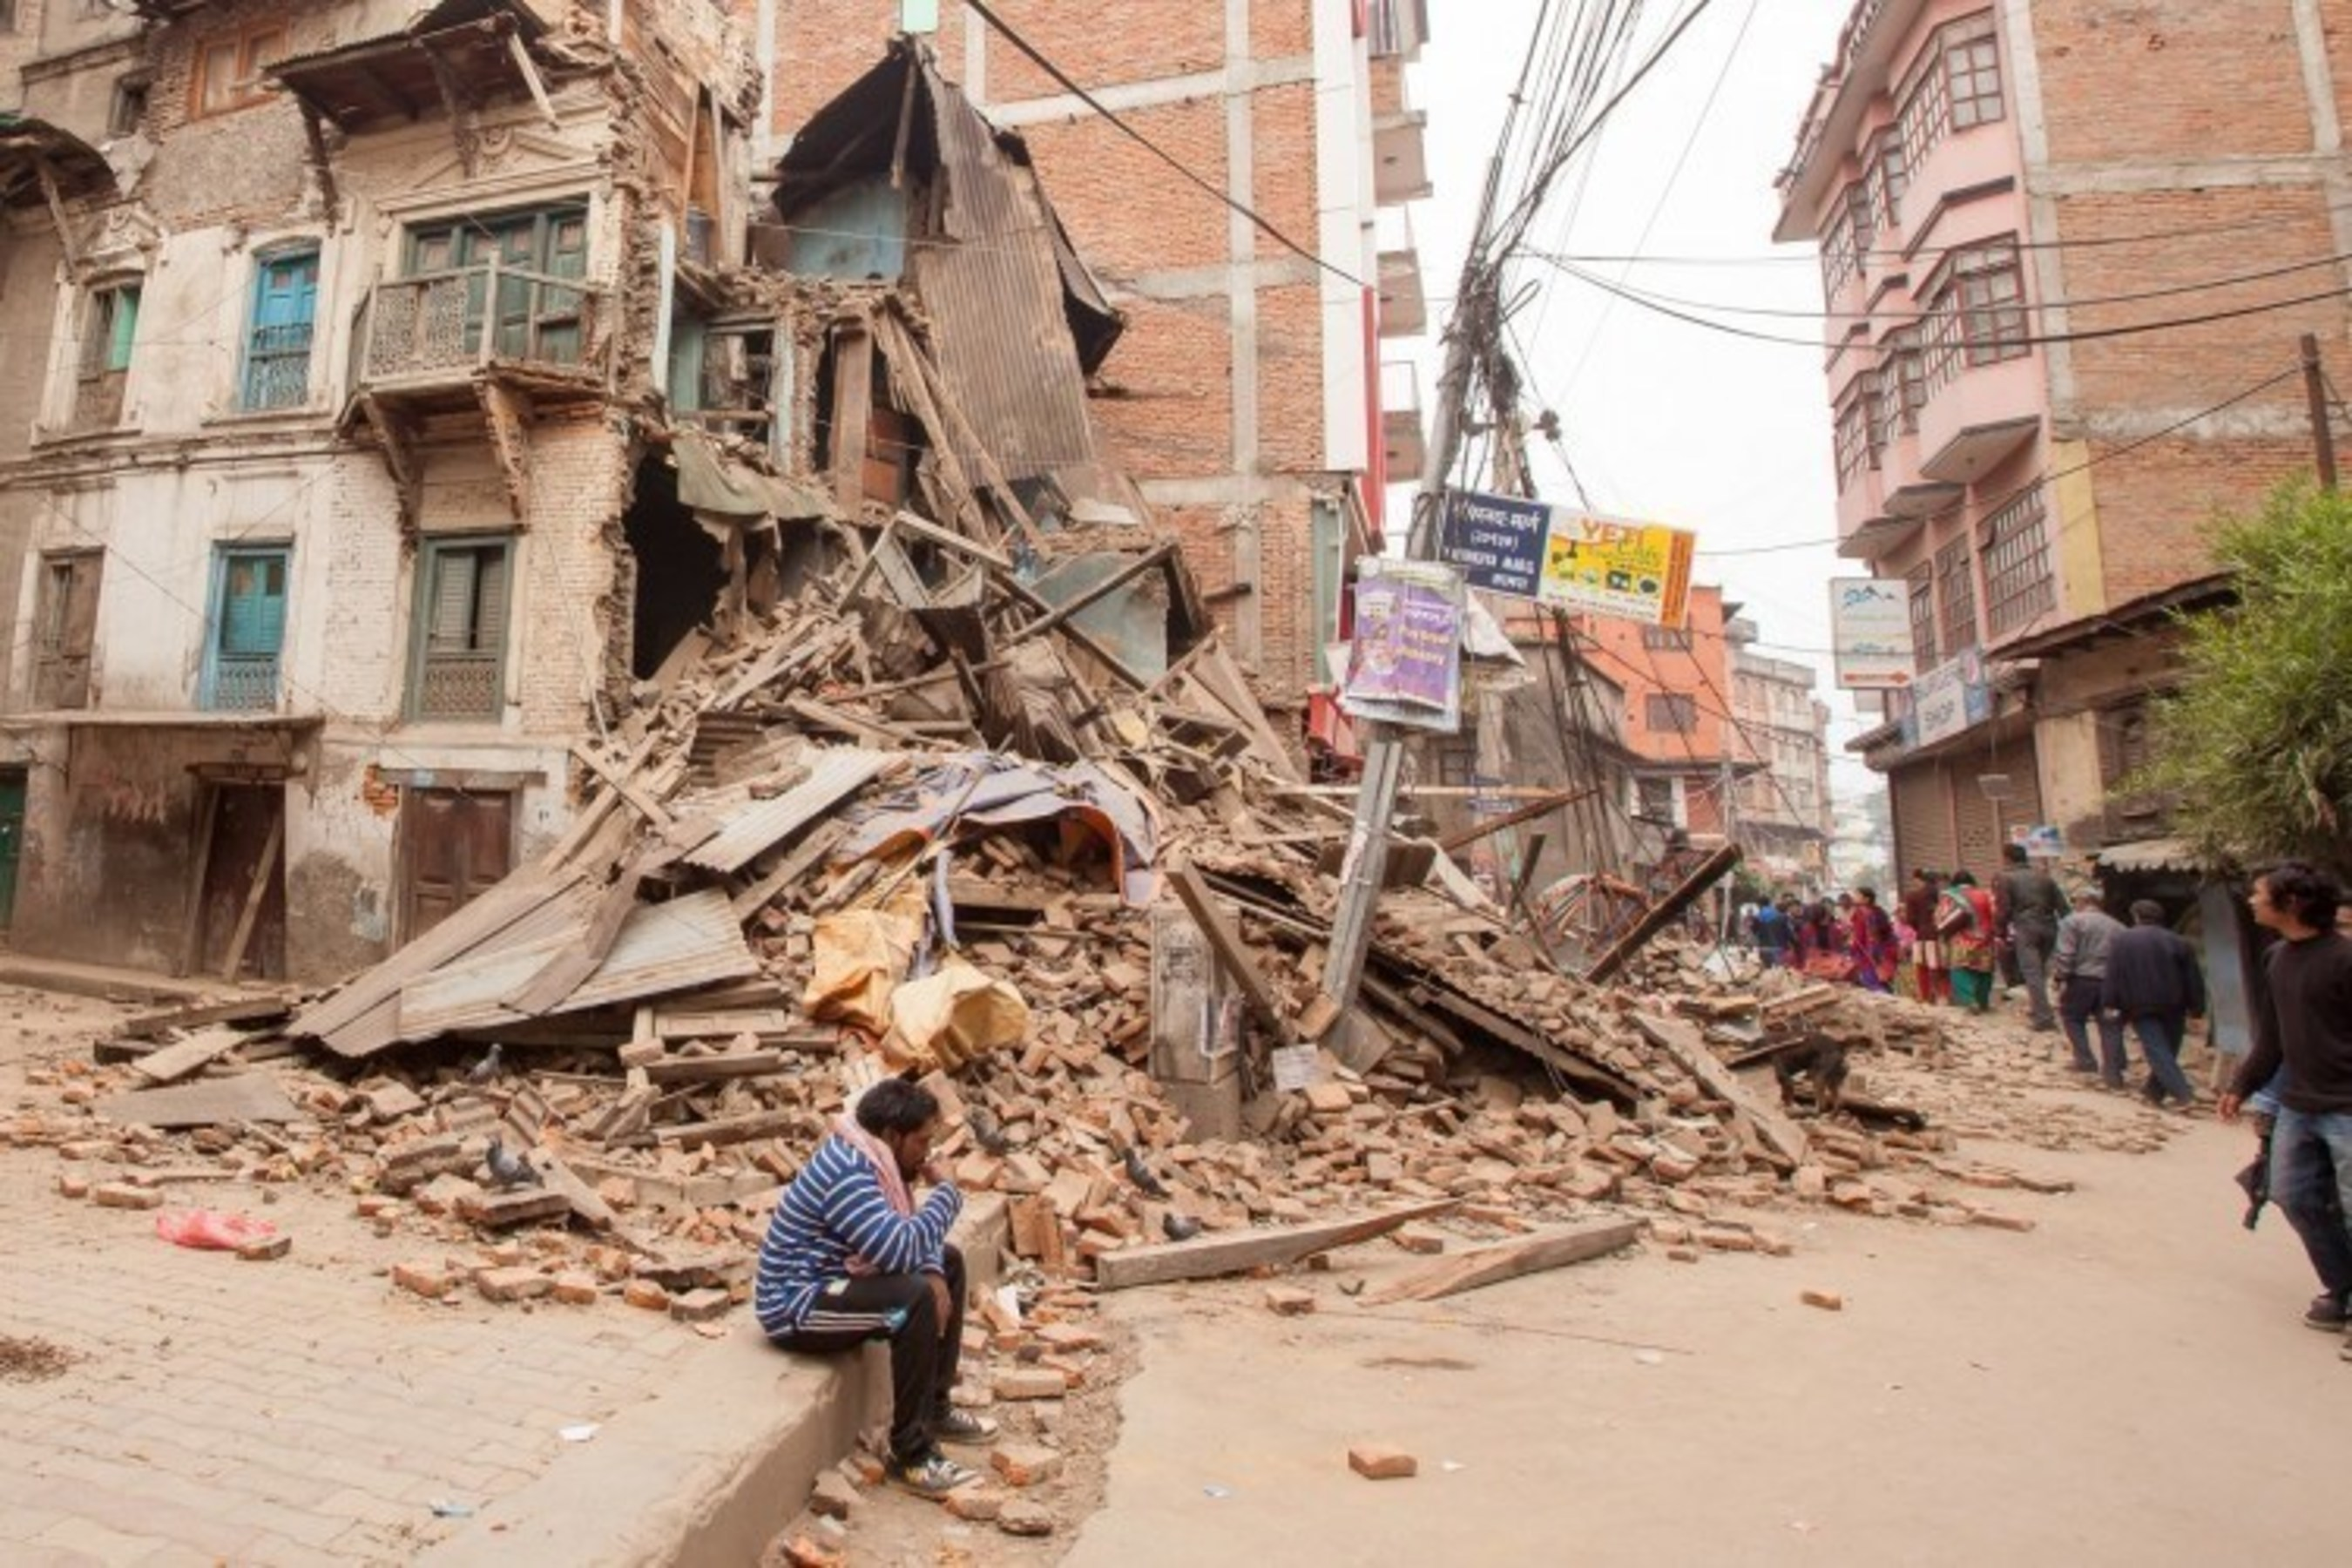 Catastrophic disasters, like the April 25, 2015, earthquake in Nepal, increase the risk of trafficking for poor families and girls